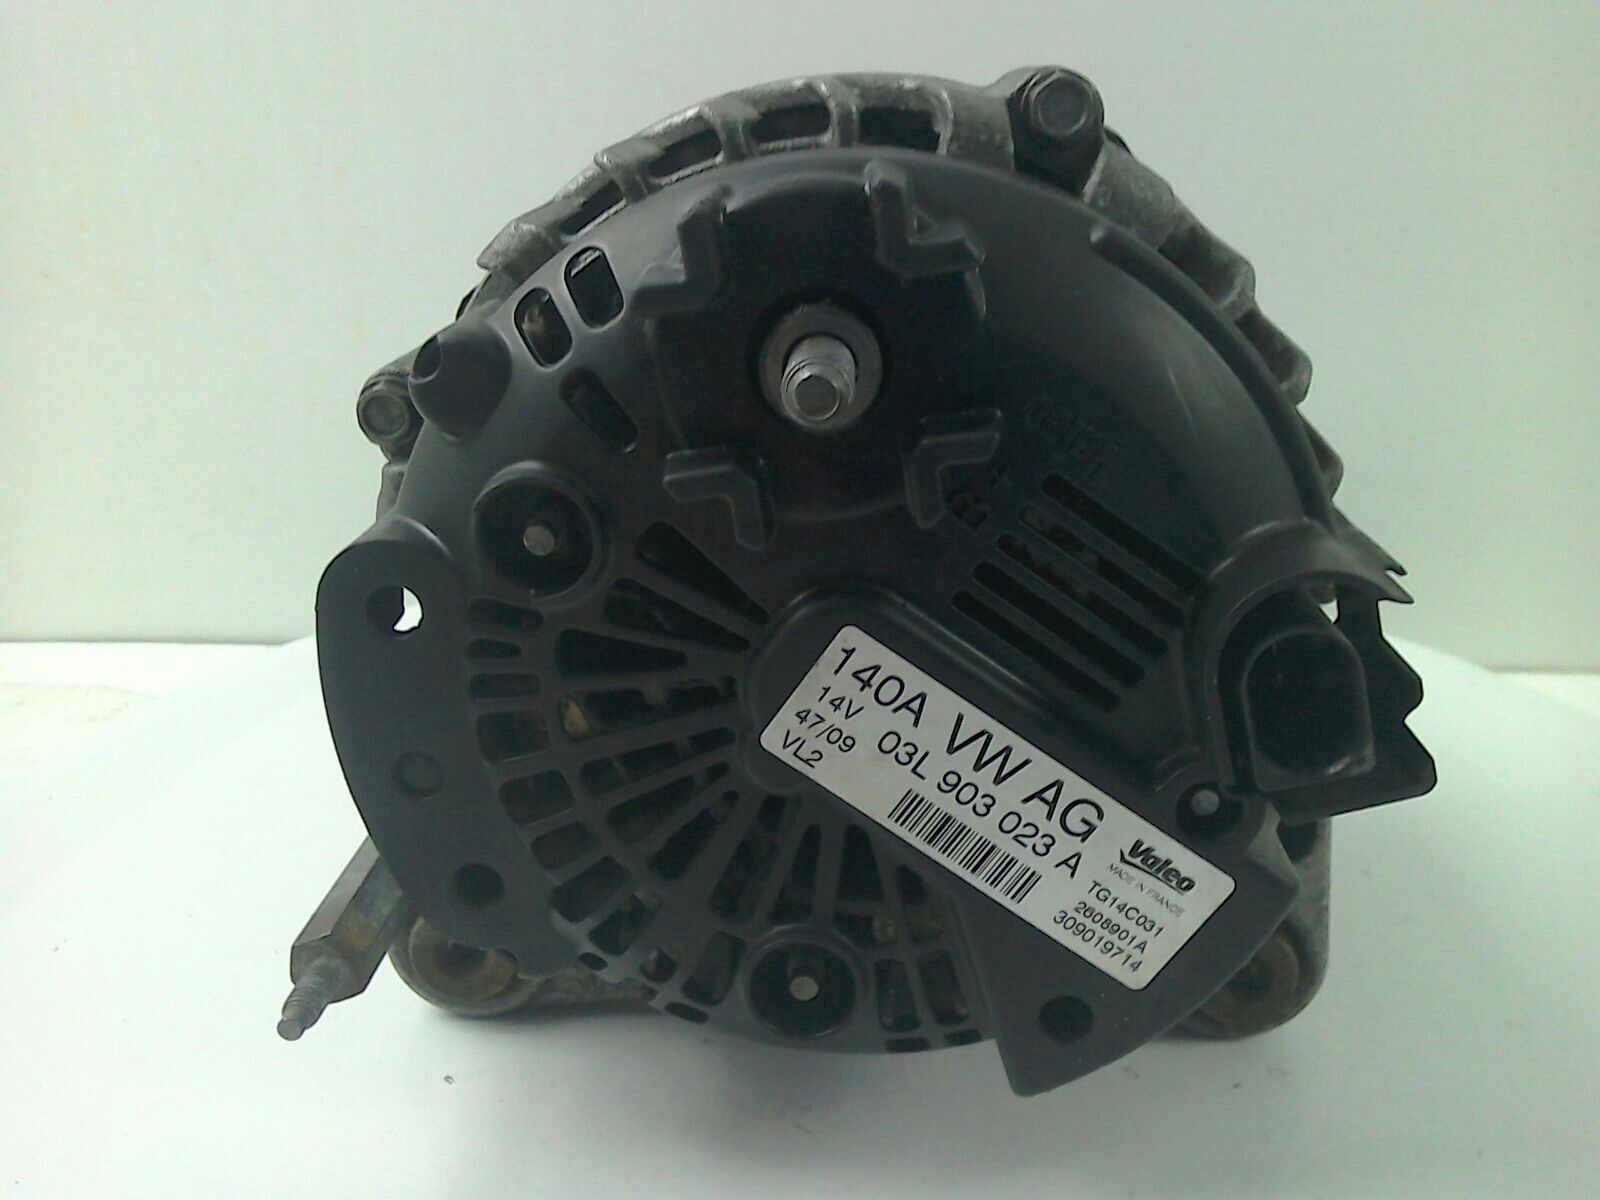 audi a3 2008 to 2013 alternator diesel manual for sale from scb rh scbvehicledismantlers co uk Audi A3 Hatchback Audi A3 Service Manual